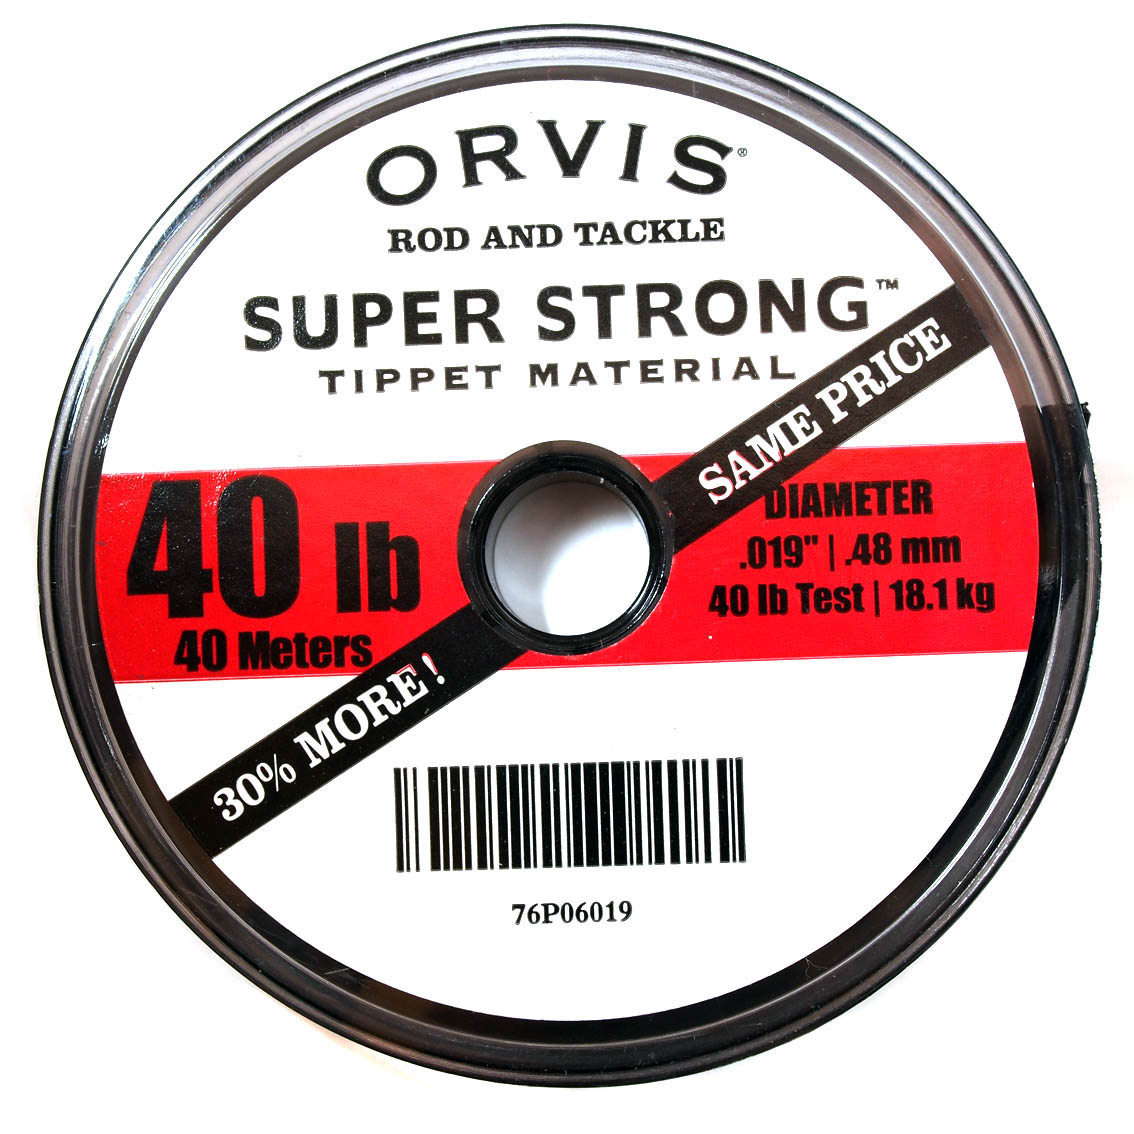 Tippet de Nylon Orvis Super Strong